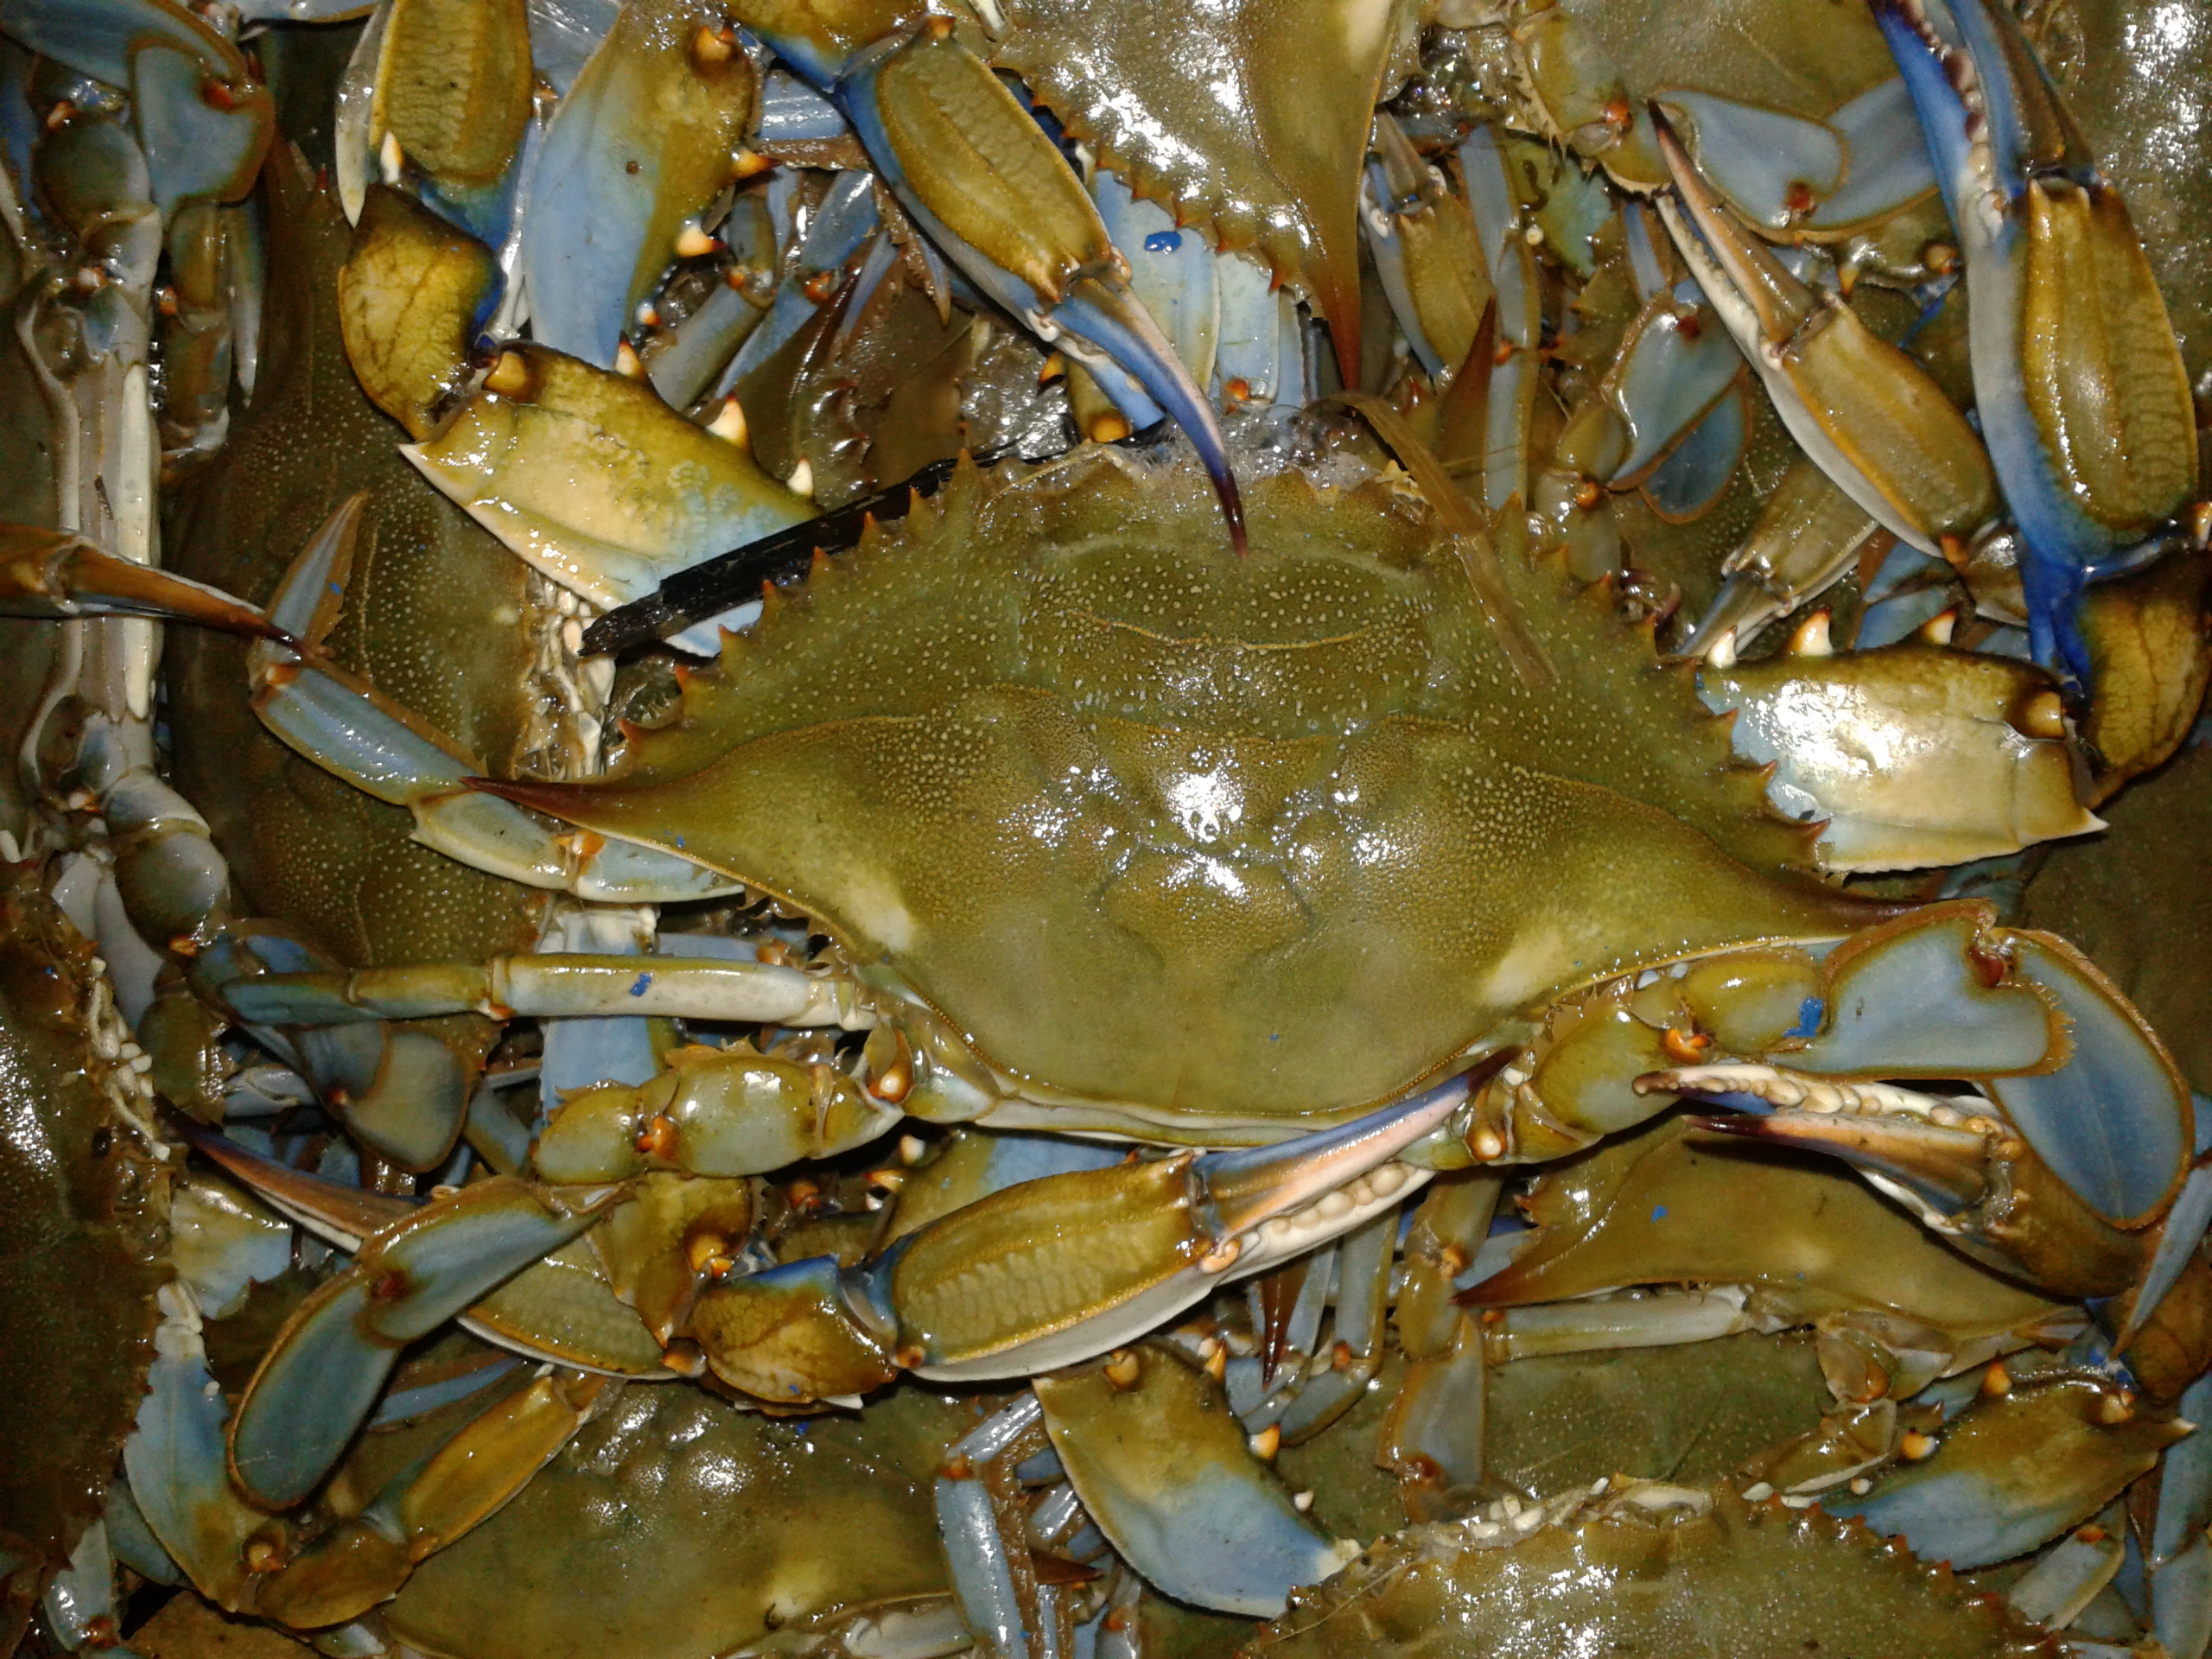 Blue Claw Hard Crabs, steamers, crab cakes, maryland crabs, delaware crabs, trot lines, crab rings